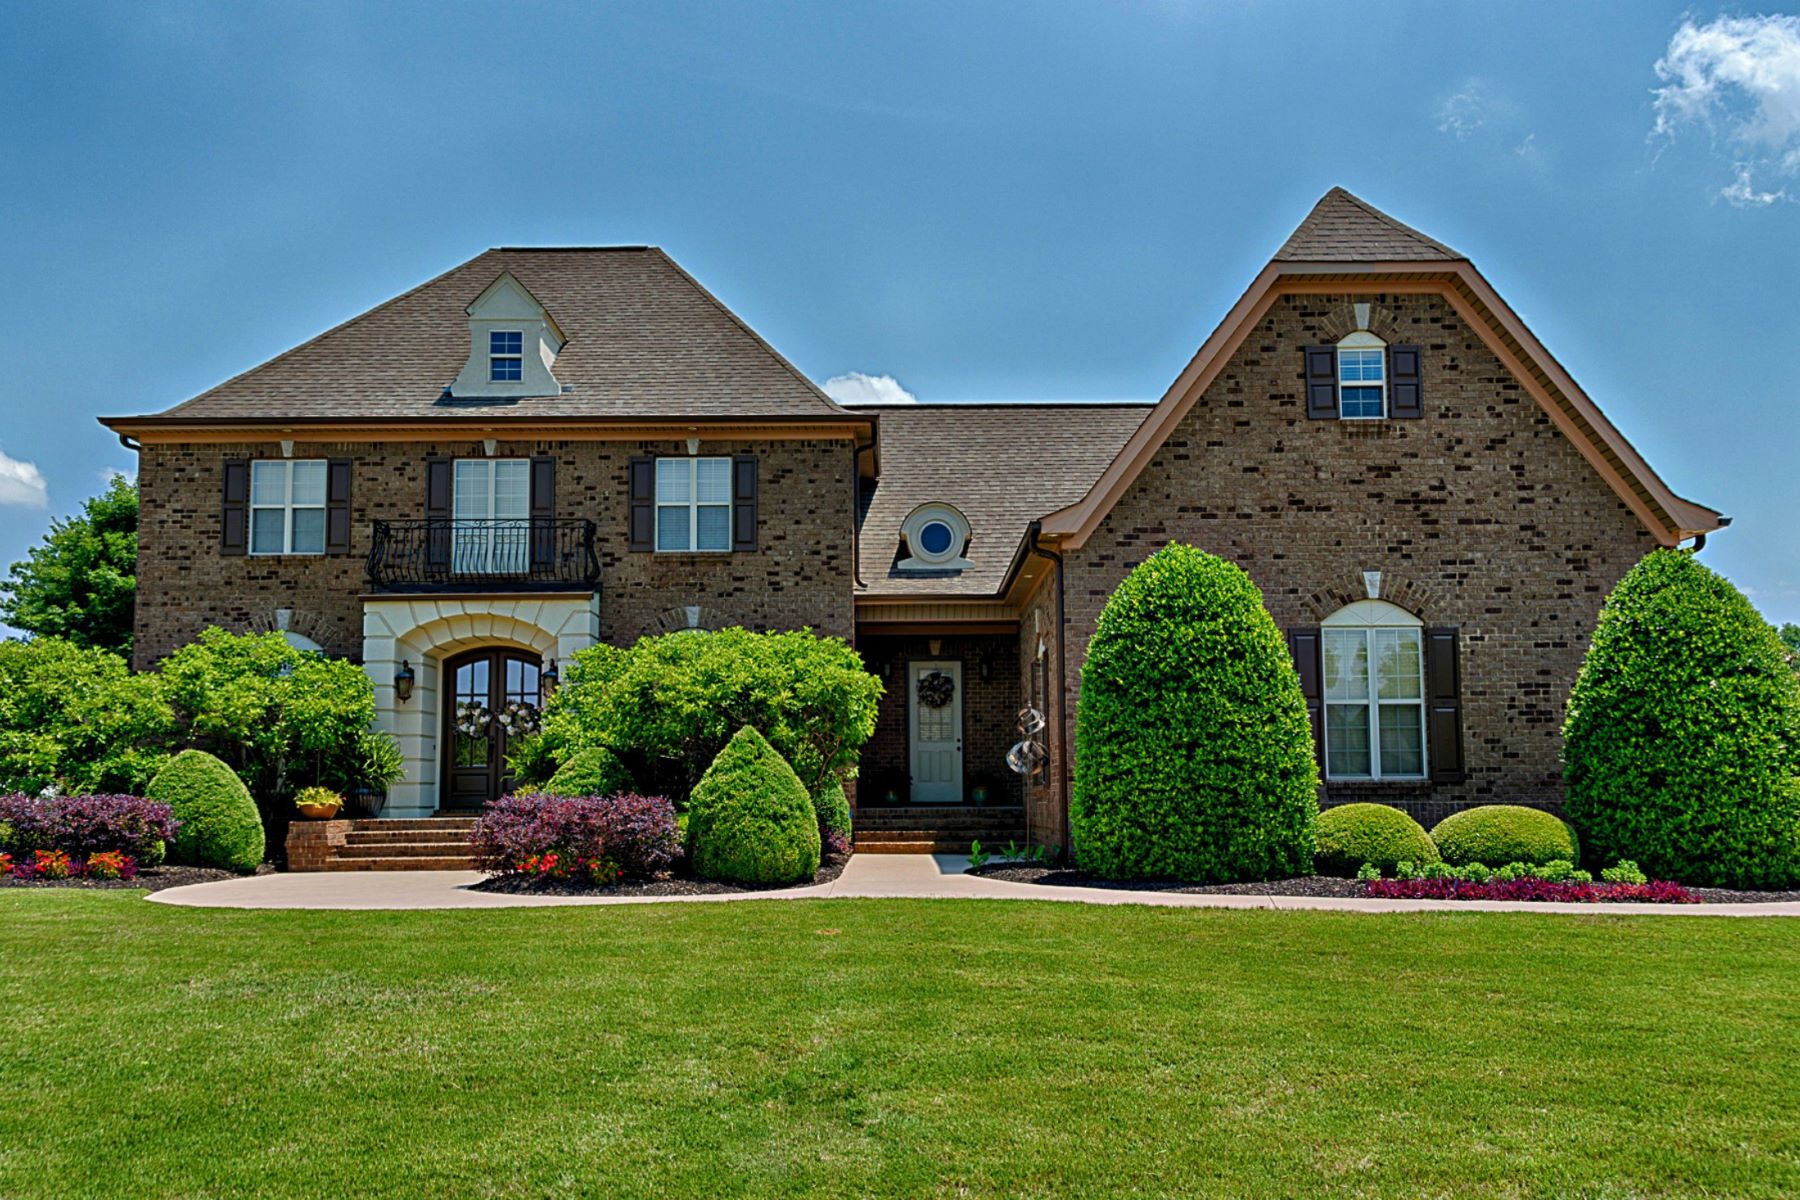 Single Family Home for Active at 12533 Elmhurst Drive Athens, Alabama 35613 United States